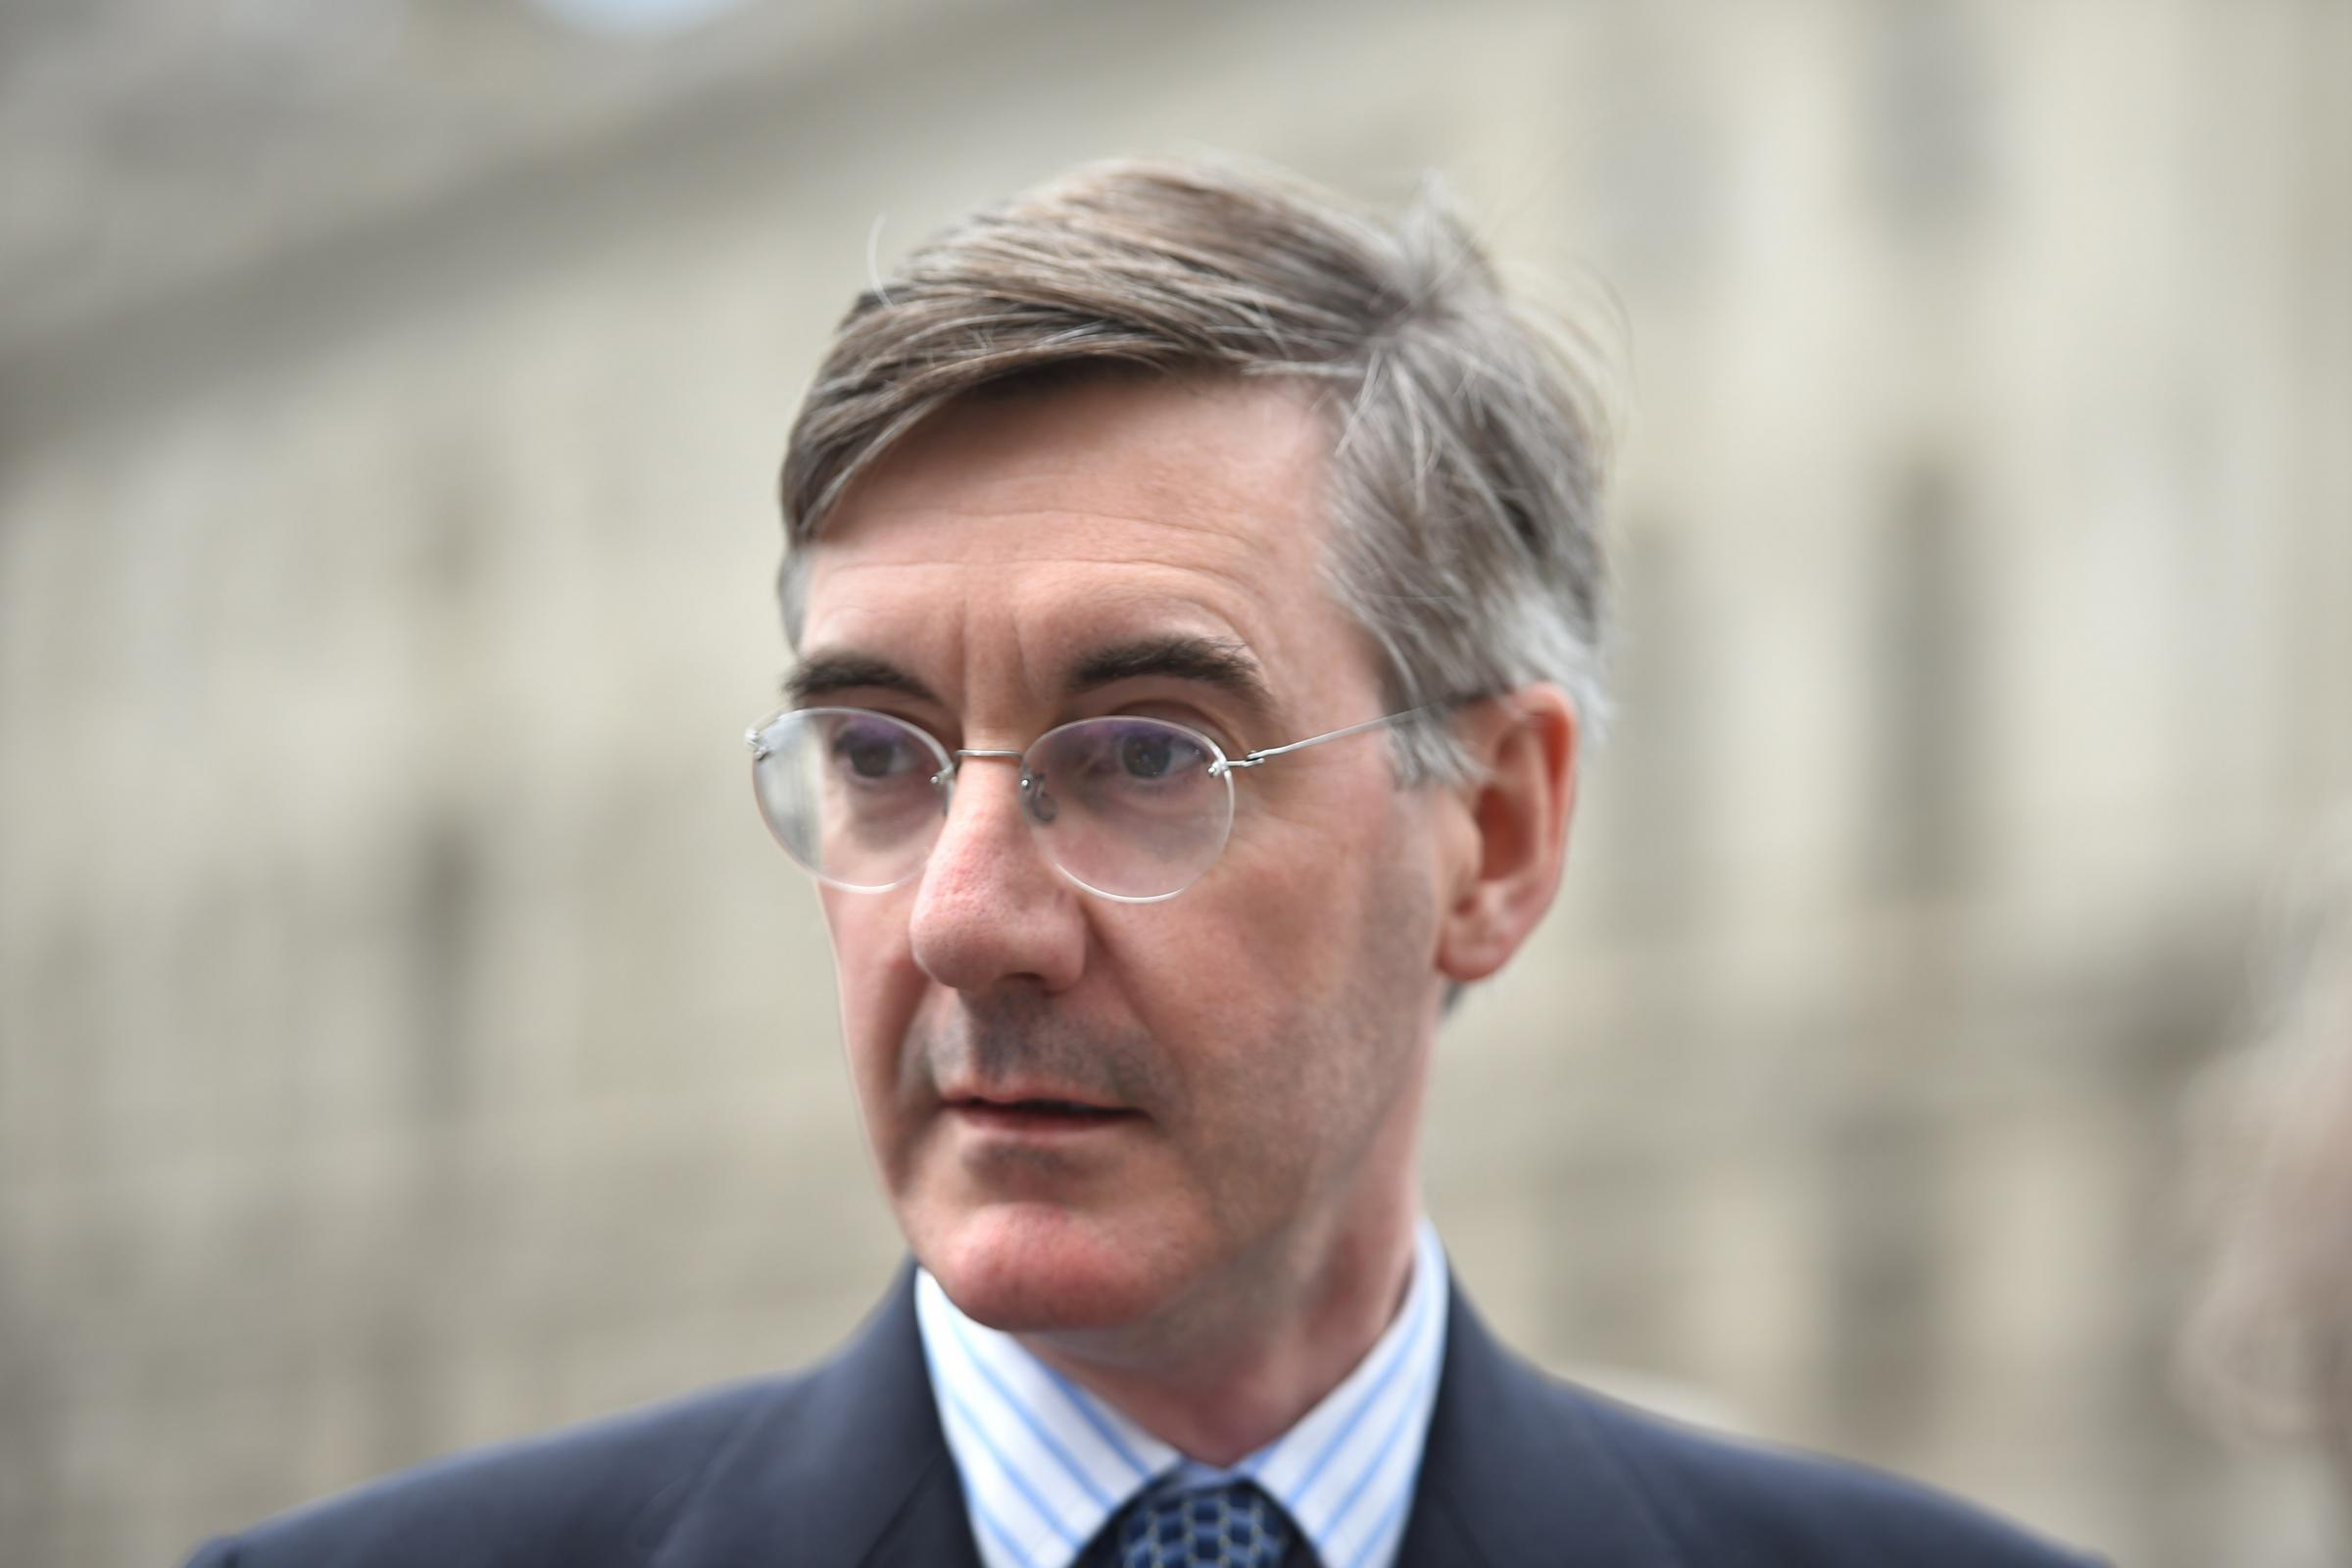 'Disgraceful'Jacob Rees-Mogg dismisses call to confirm new SNP MEP